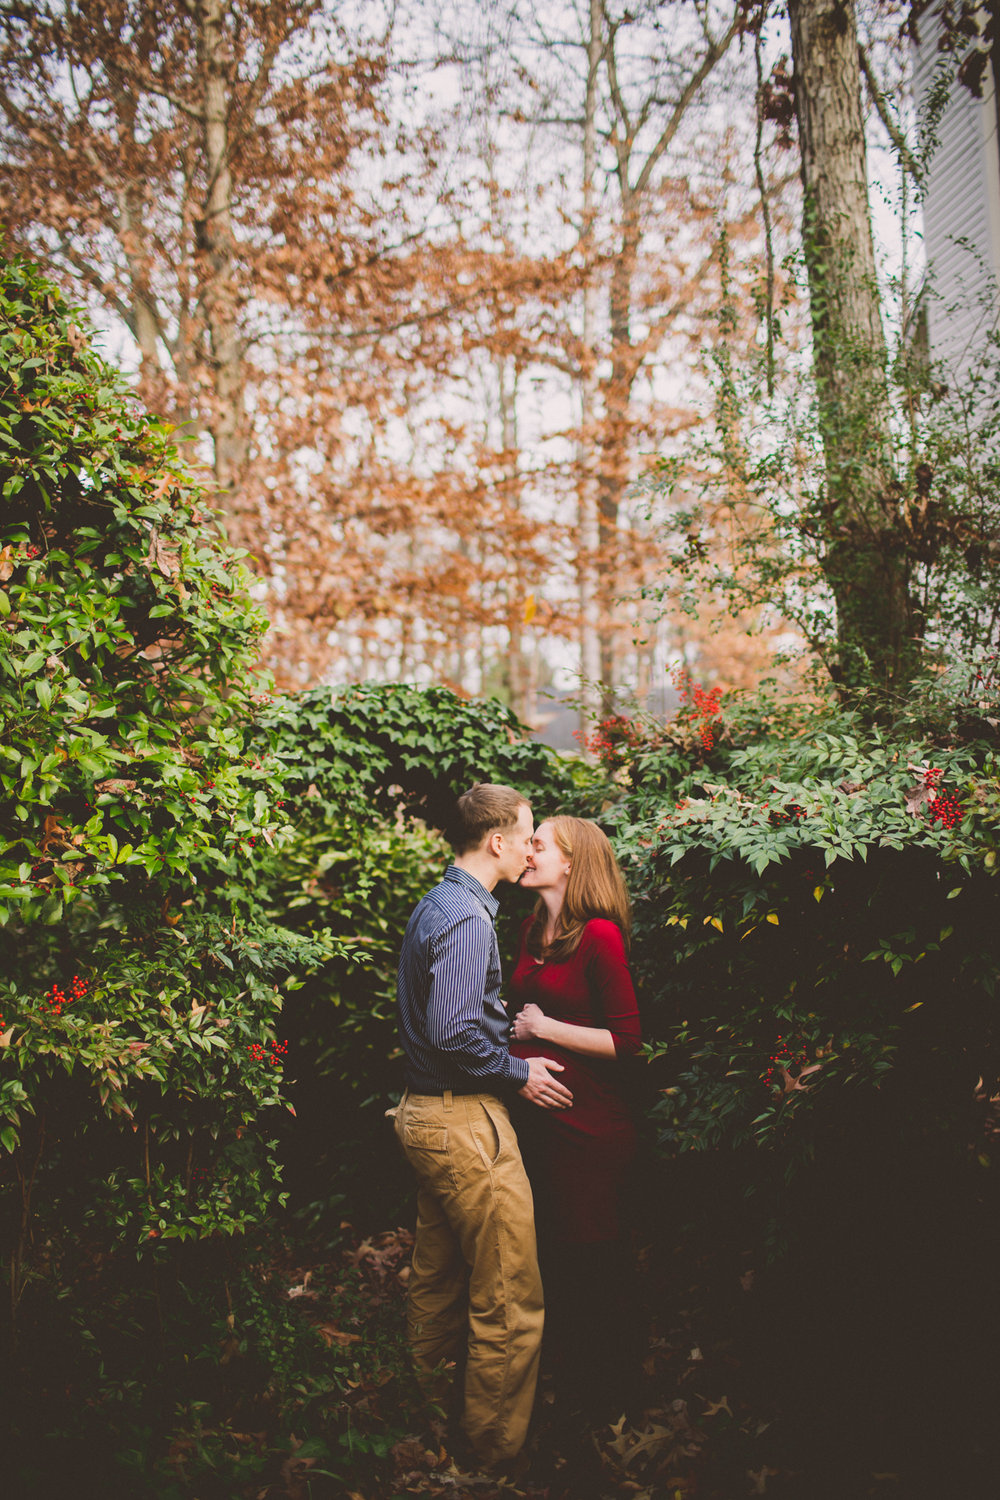 inhome-maternity-holiday-session-kelley-raye-atlanta-famlily-photographer-49.jpg